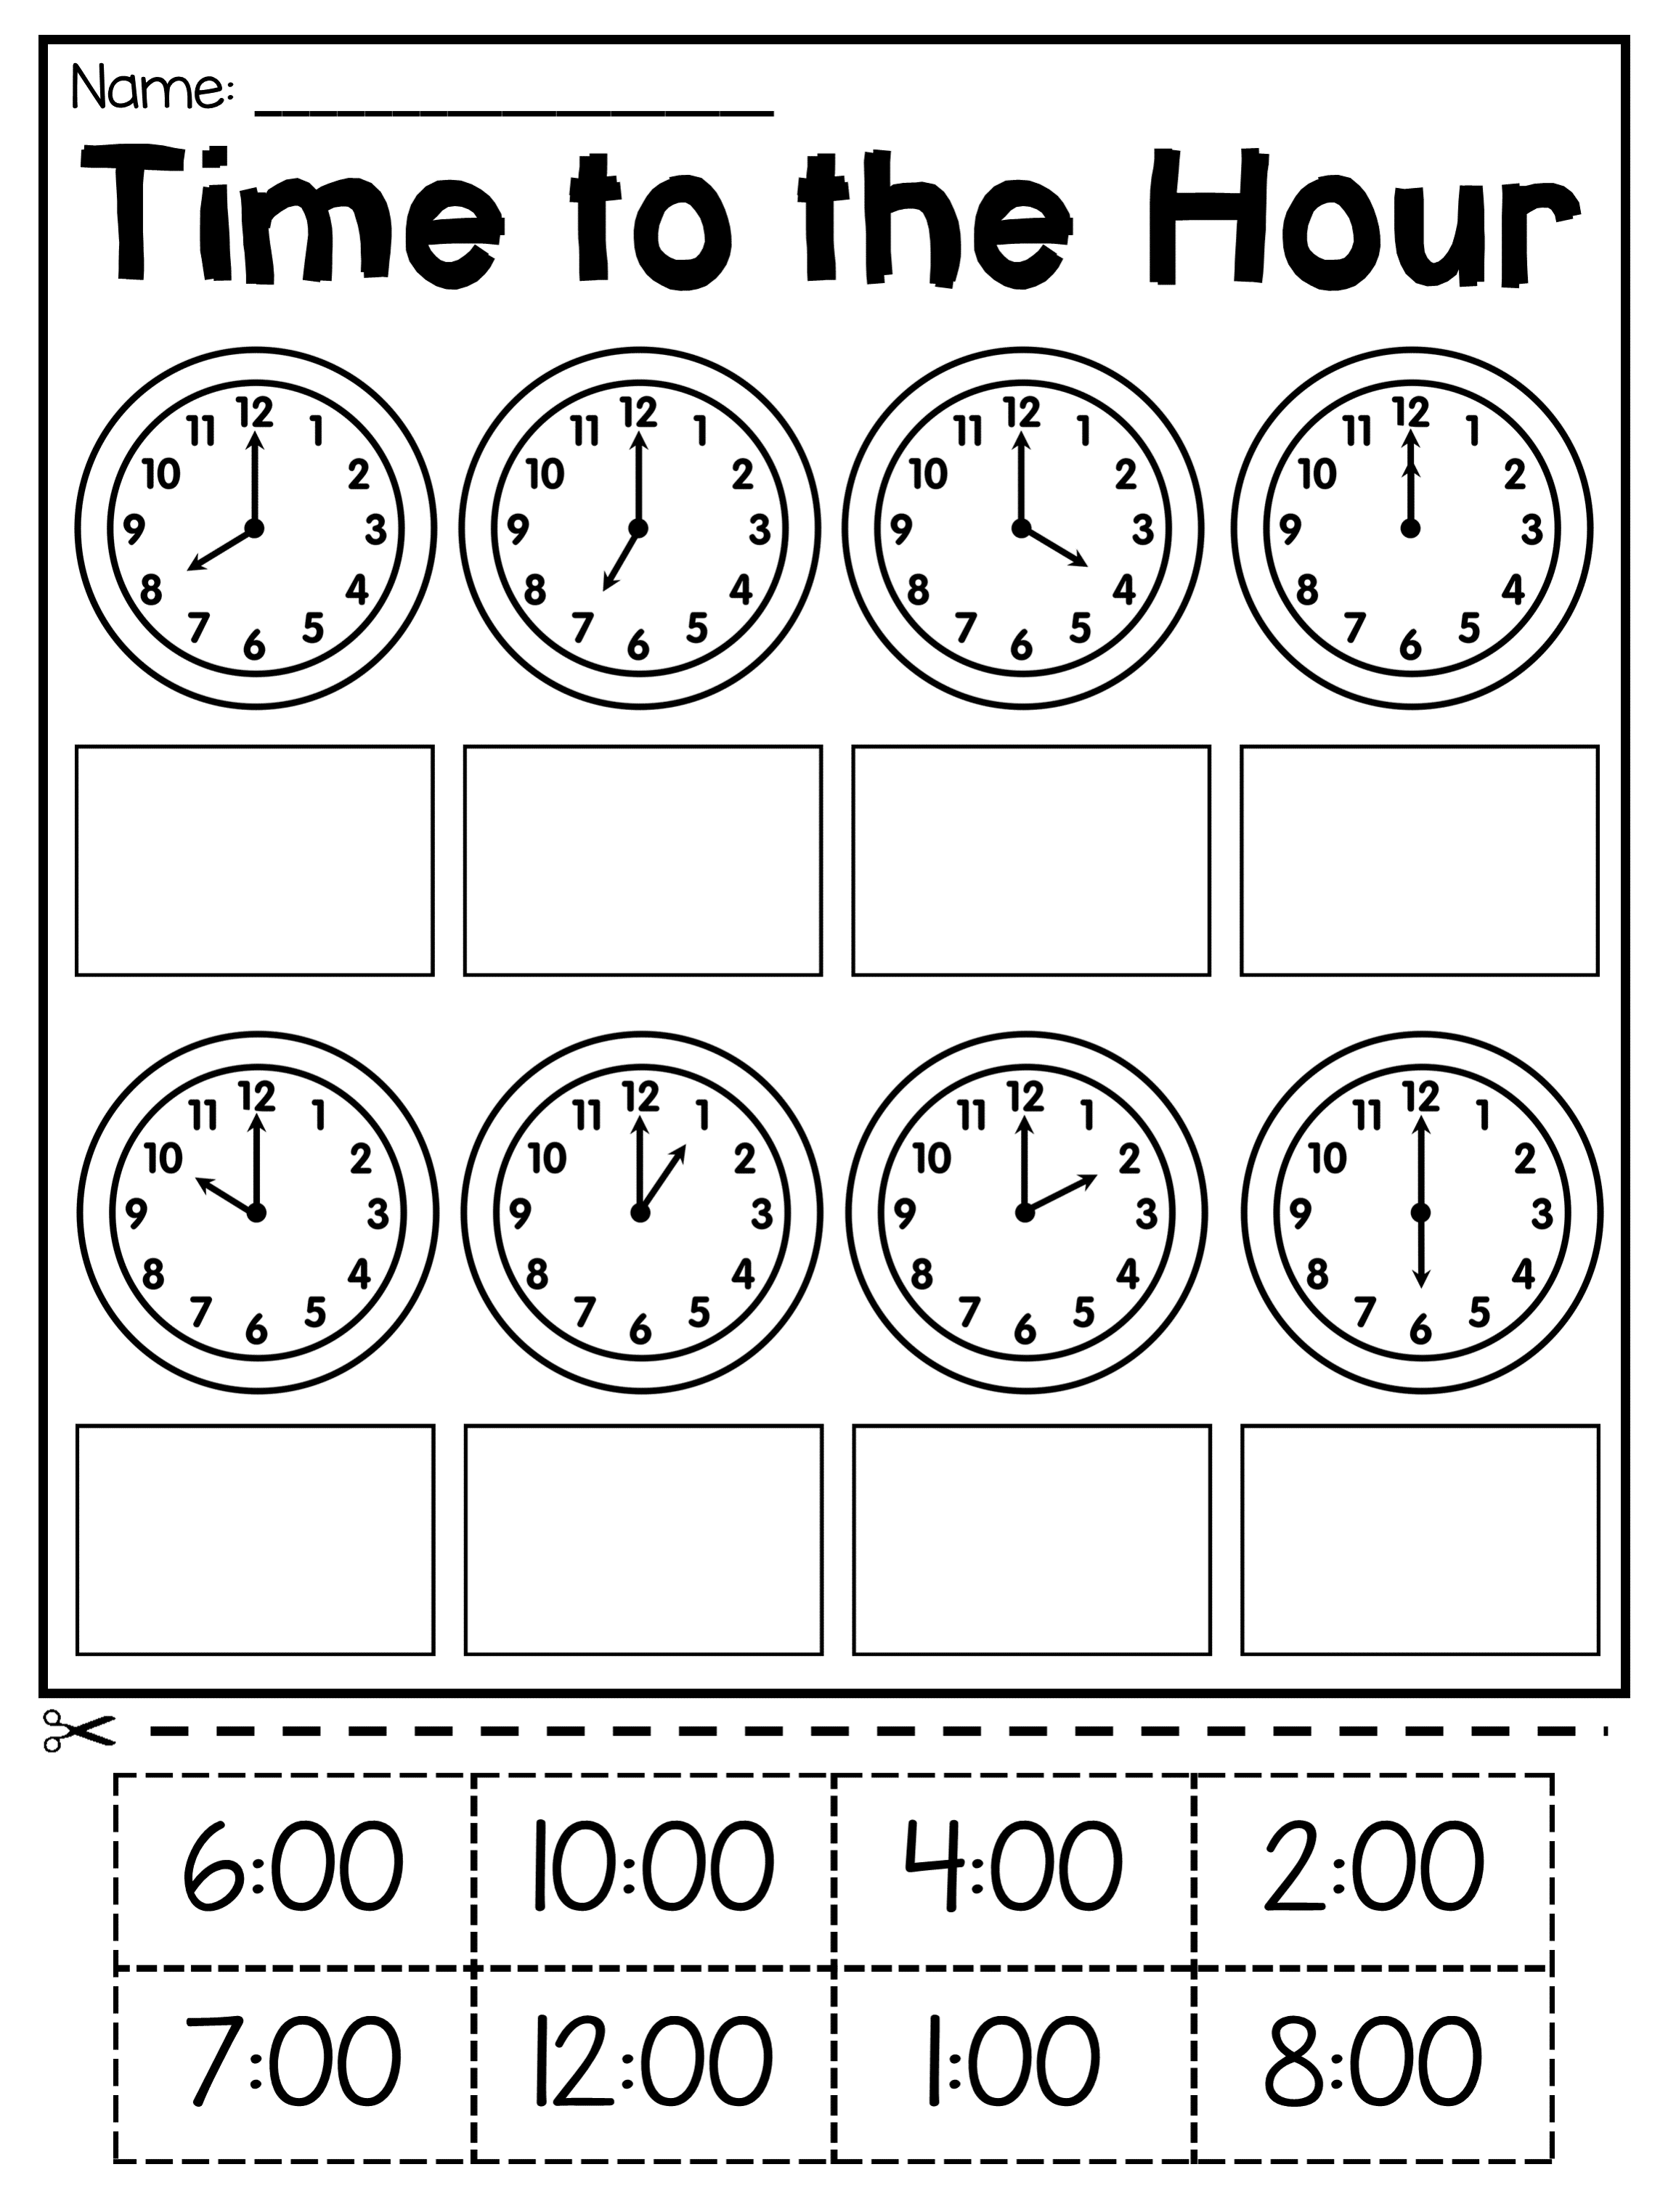 hight resolution of 1St Grade Time Worksheets - Math Worksheet for Kids   Kids math worksheets